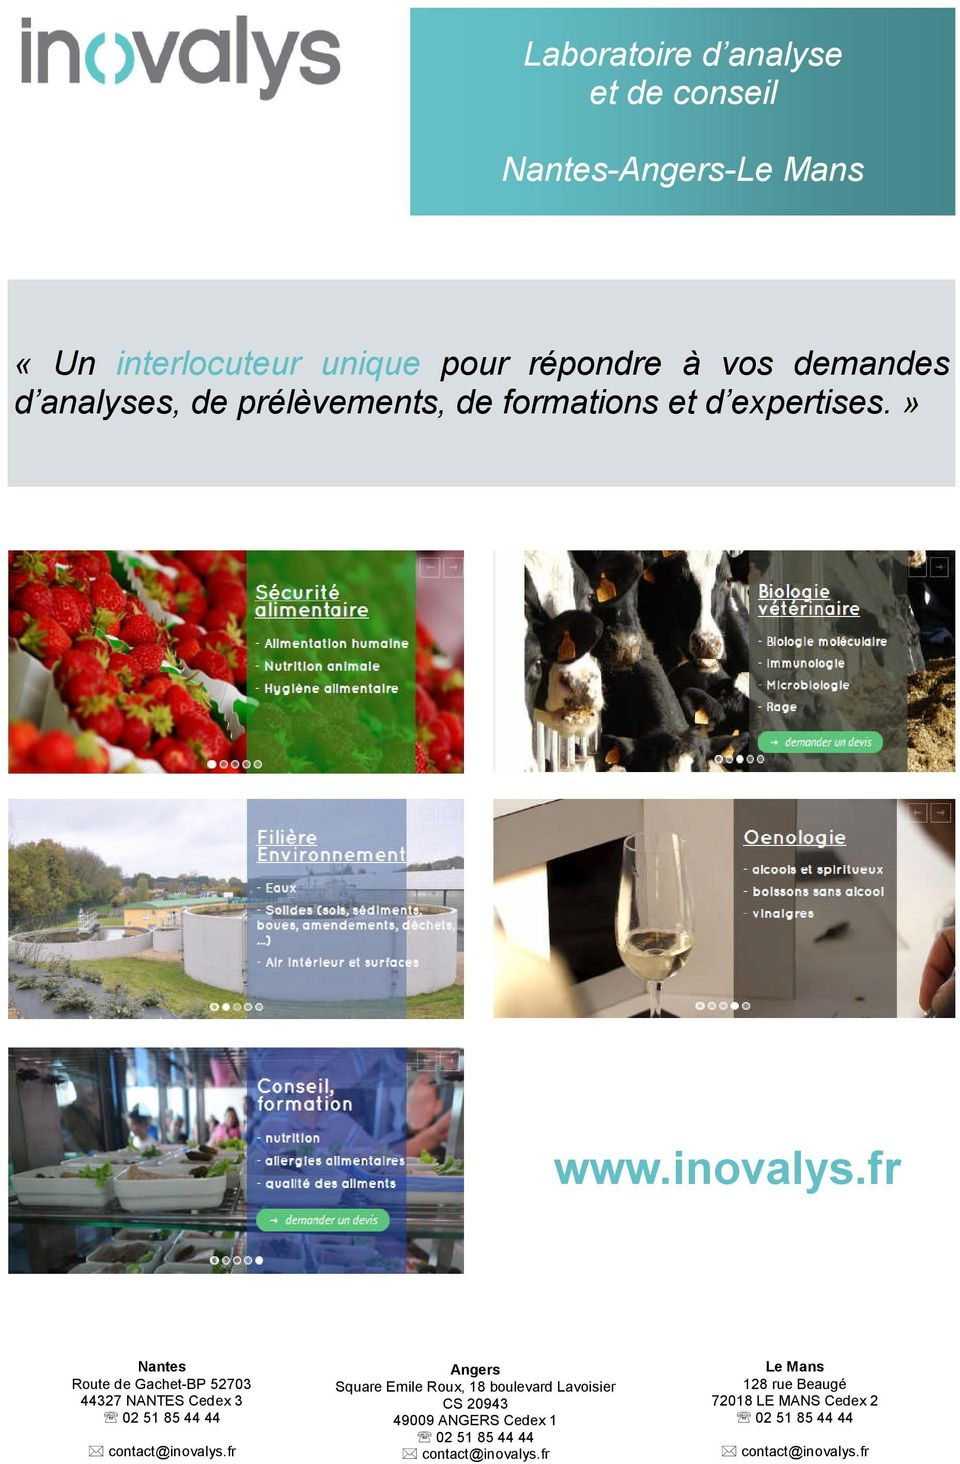 fr Nantes Route de Gachet-BP 52703 44327 NANTES Cedex 3 02 51 85 44 44 contact@inovalys.